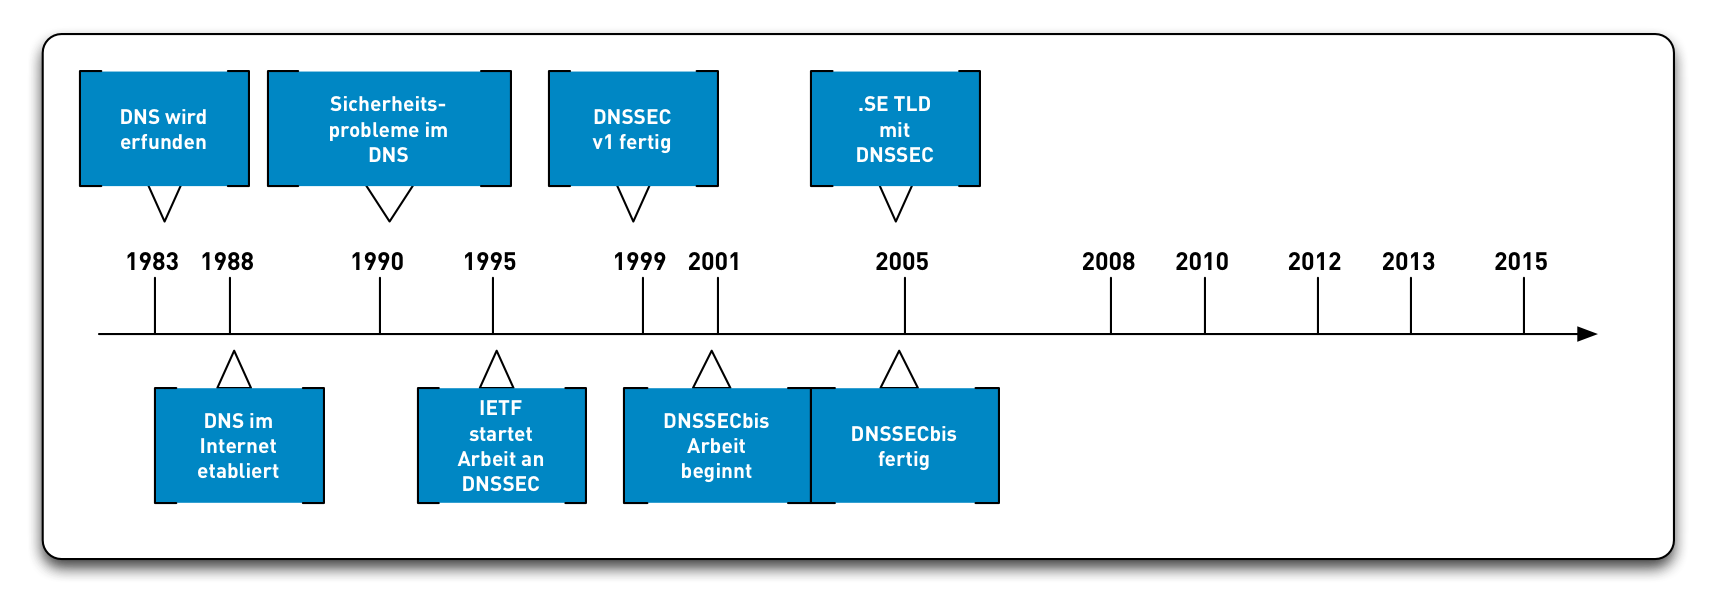 DNSSEC-History09.png